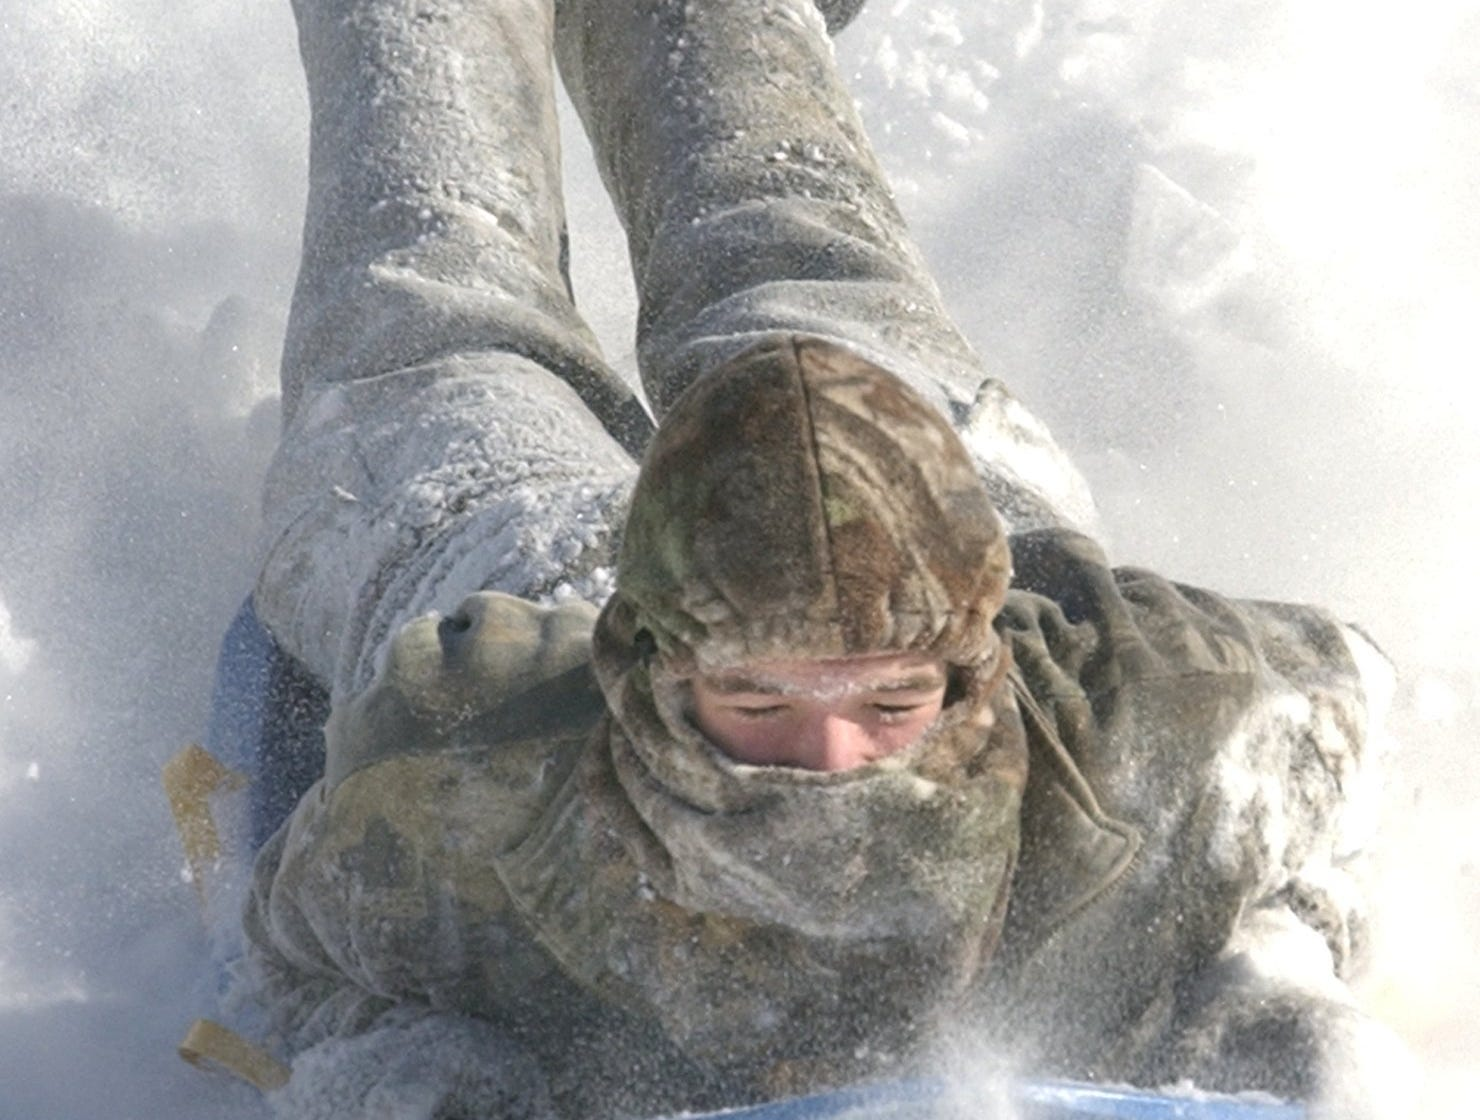 At Bob Jones University: BJU Academy student Tim Davis, 17, enjoys some serious sledding Thursday morning. Davis and other academy students had a day off because of the snow January 23, 2003.